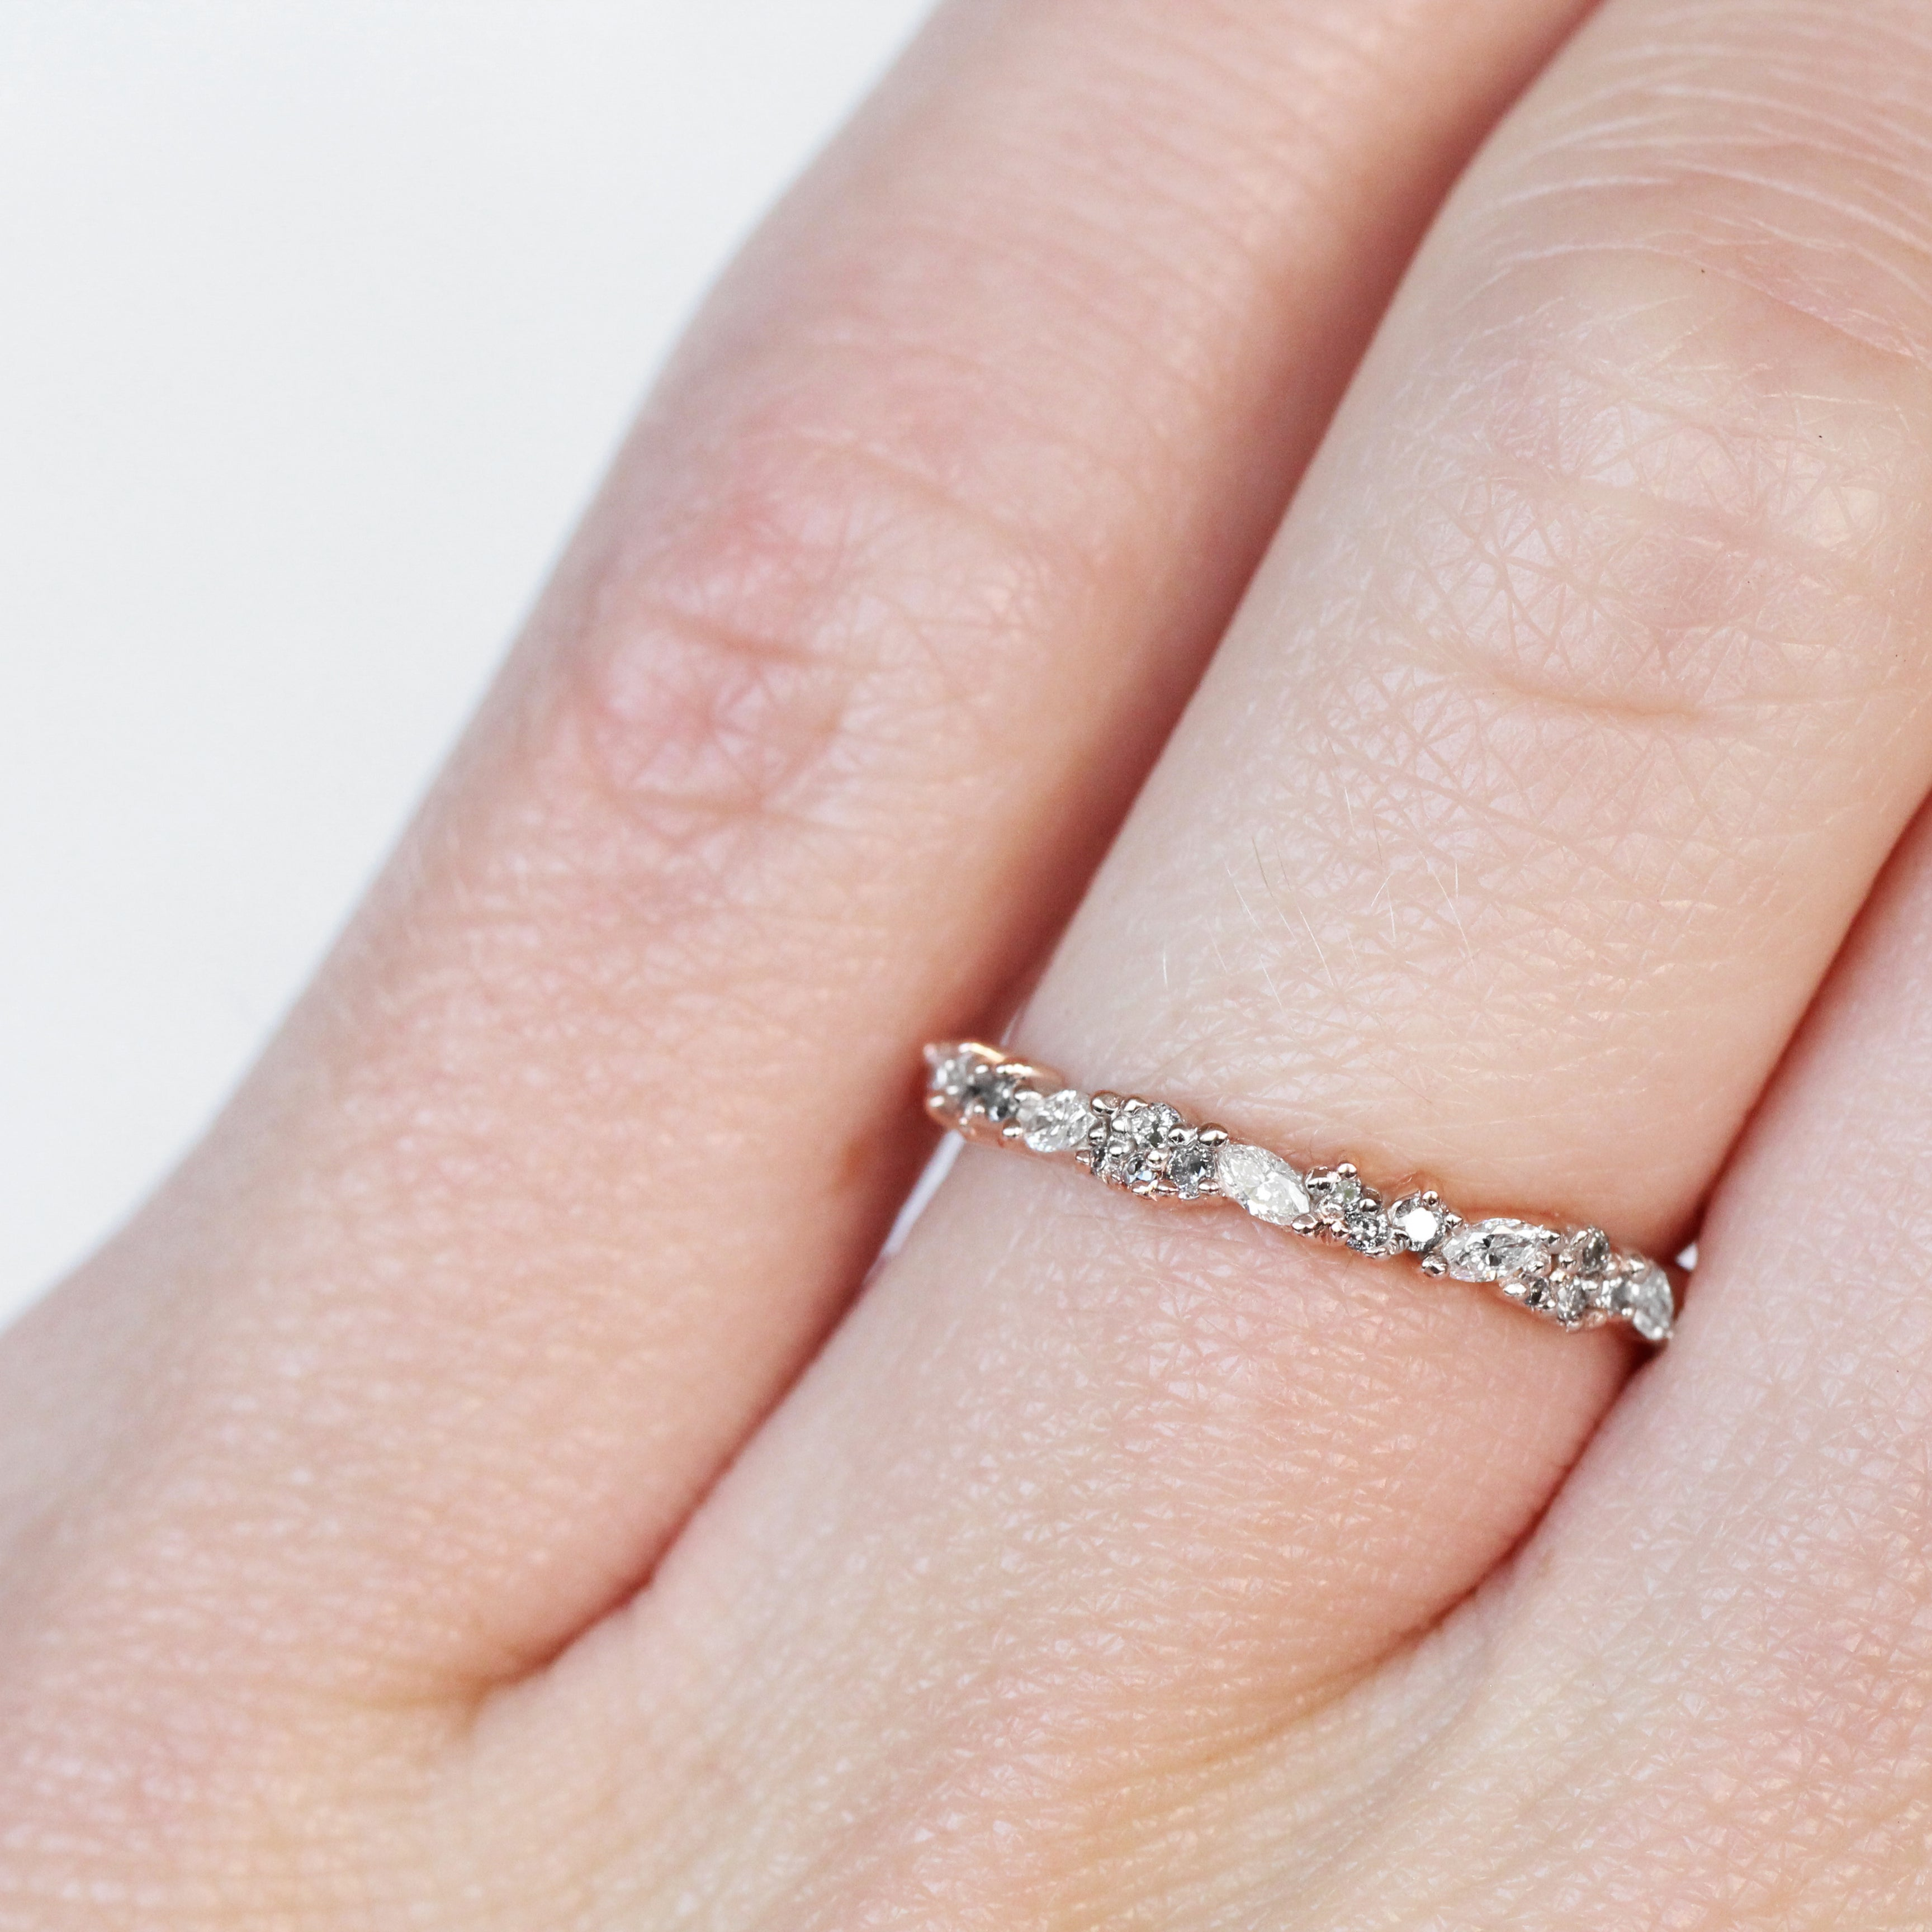 Gennie Diamond Engagement Ring Band - White + Gray Diamonds - Celestial Diamonds ® by Midwinter Co.